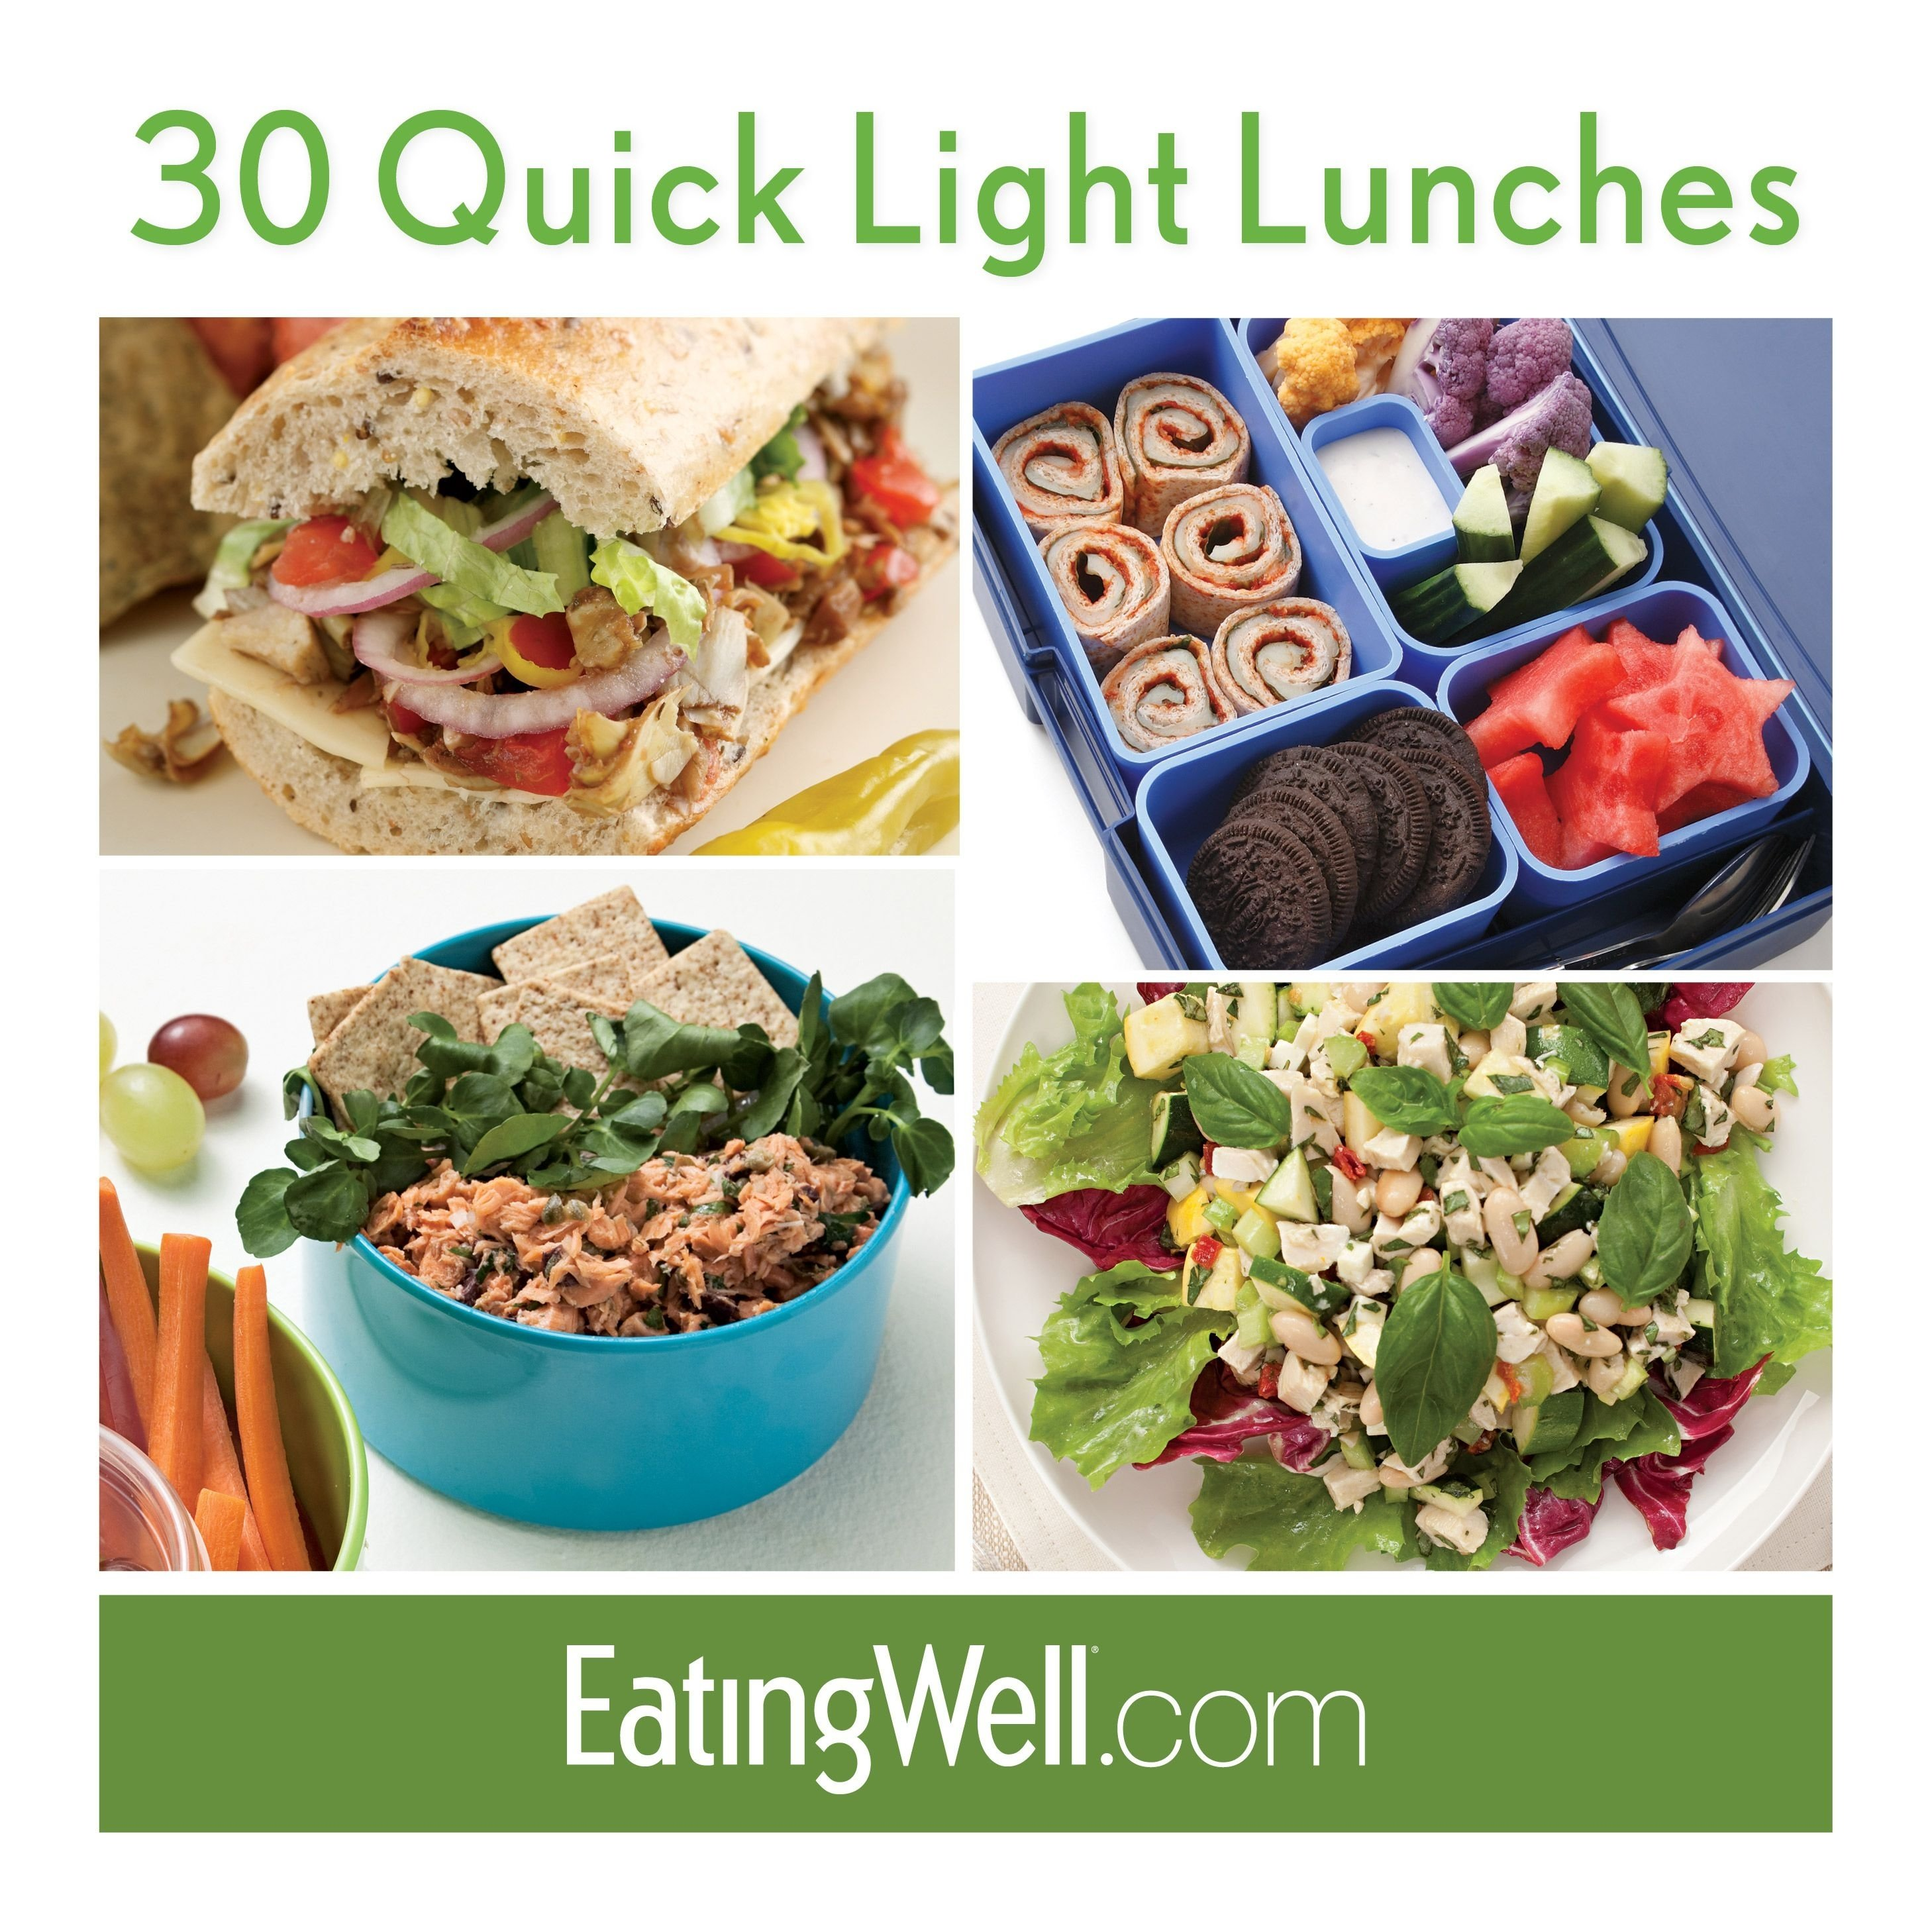 sandwiches, salads, bento boxes and more healthy, low-calorie lunch